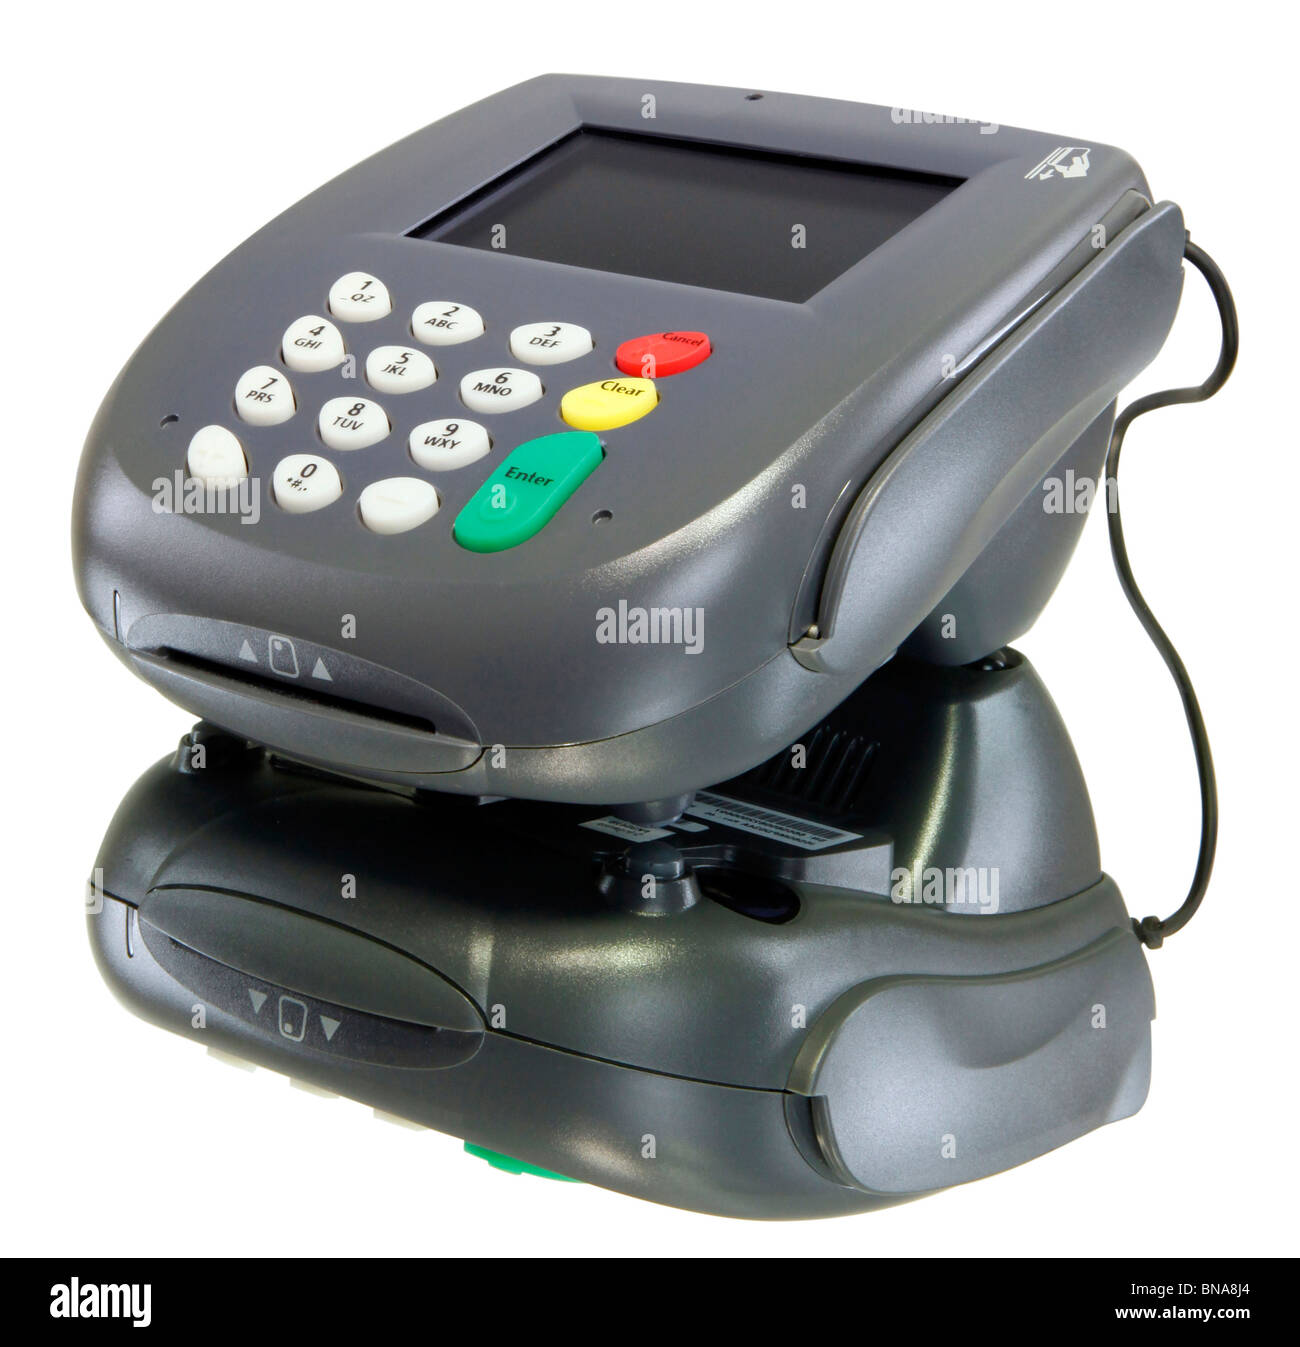 Card reader, color screen with youe message here! - Stock Image